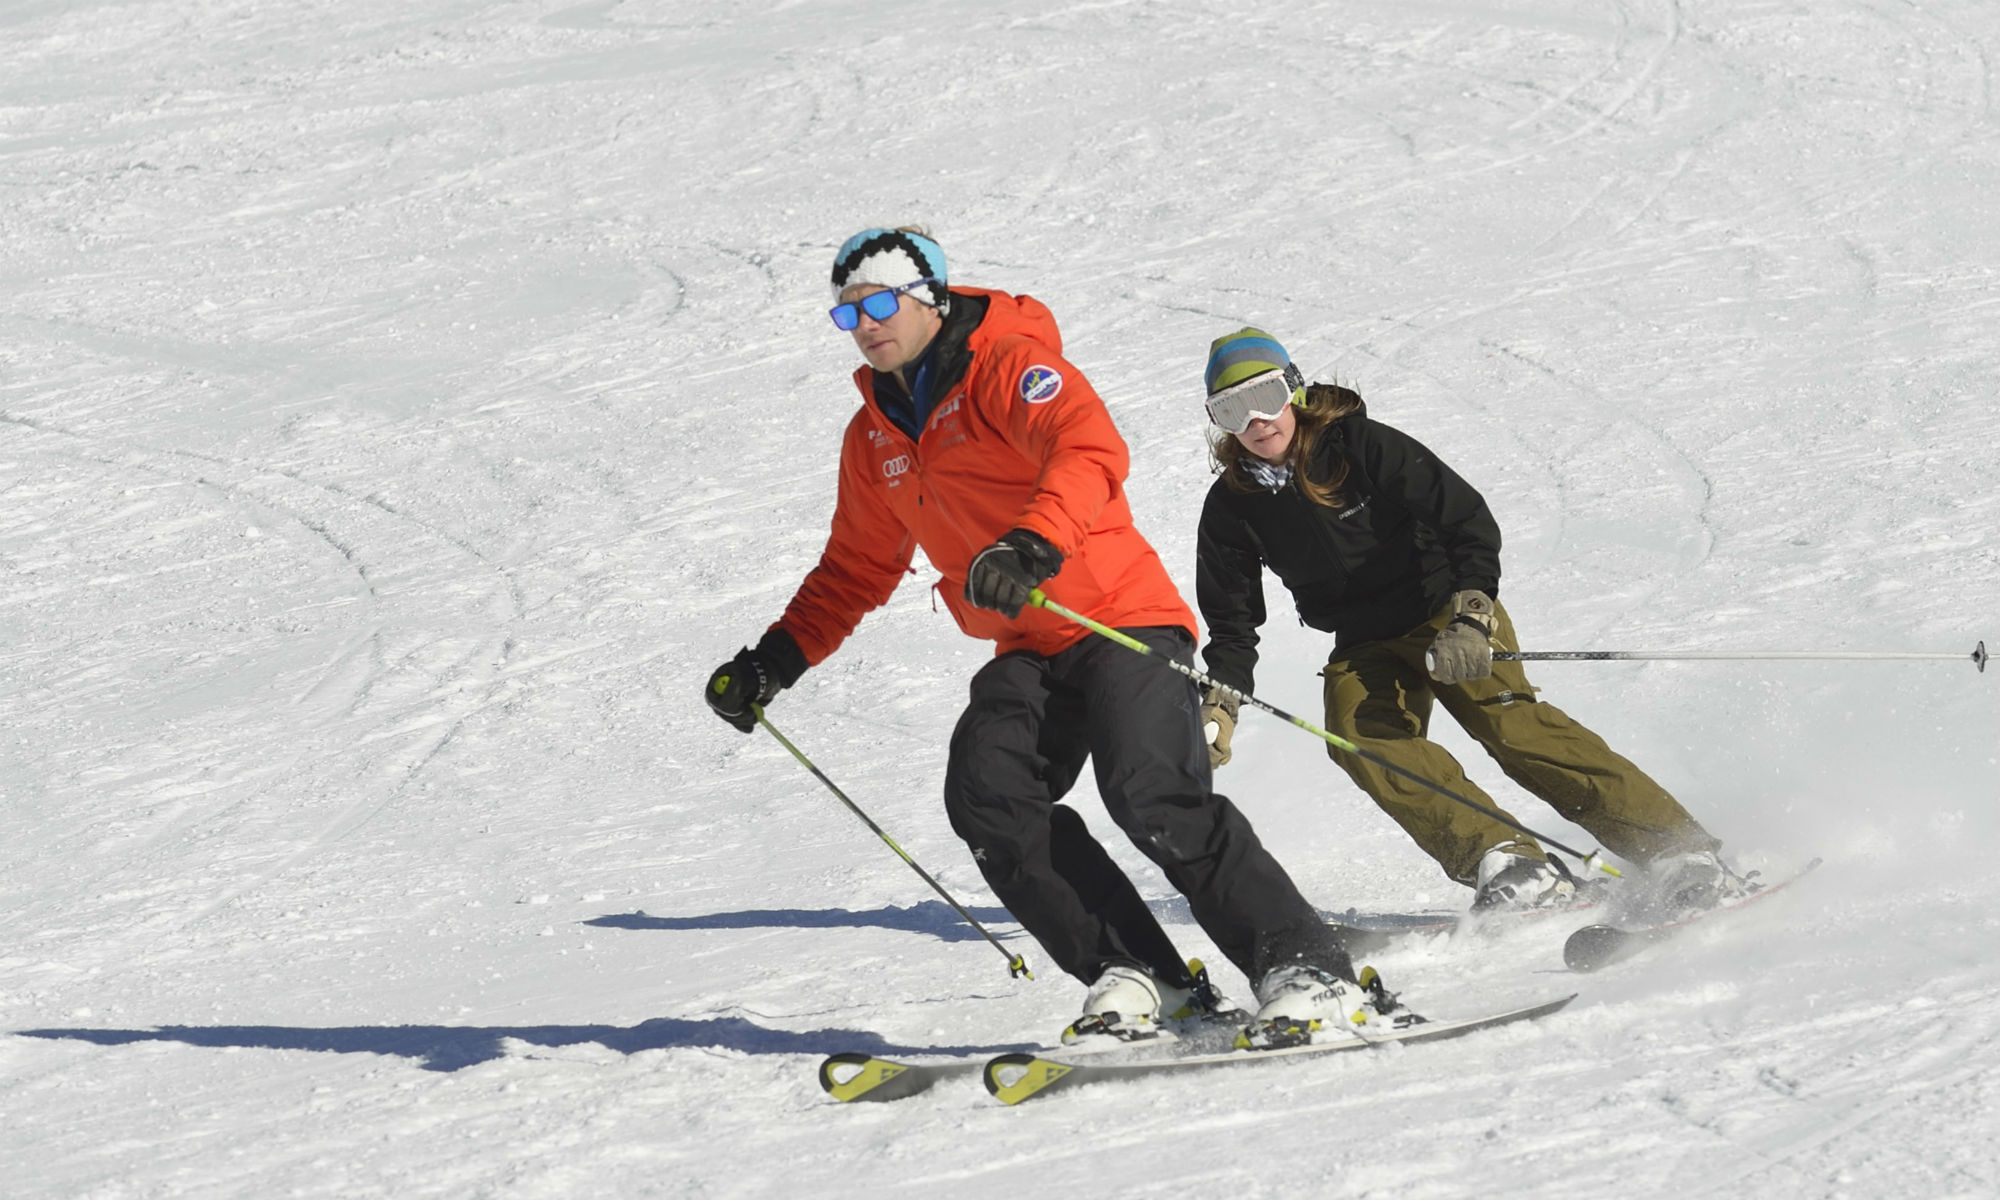 Two returnee skiers practice their technique on the slopes.